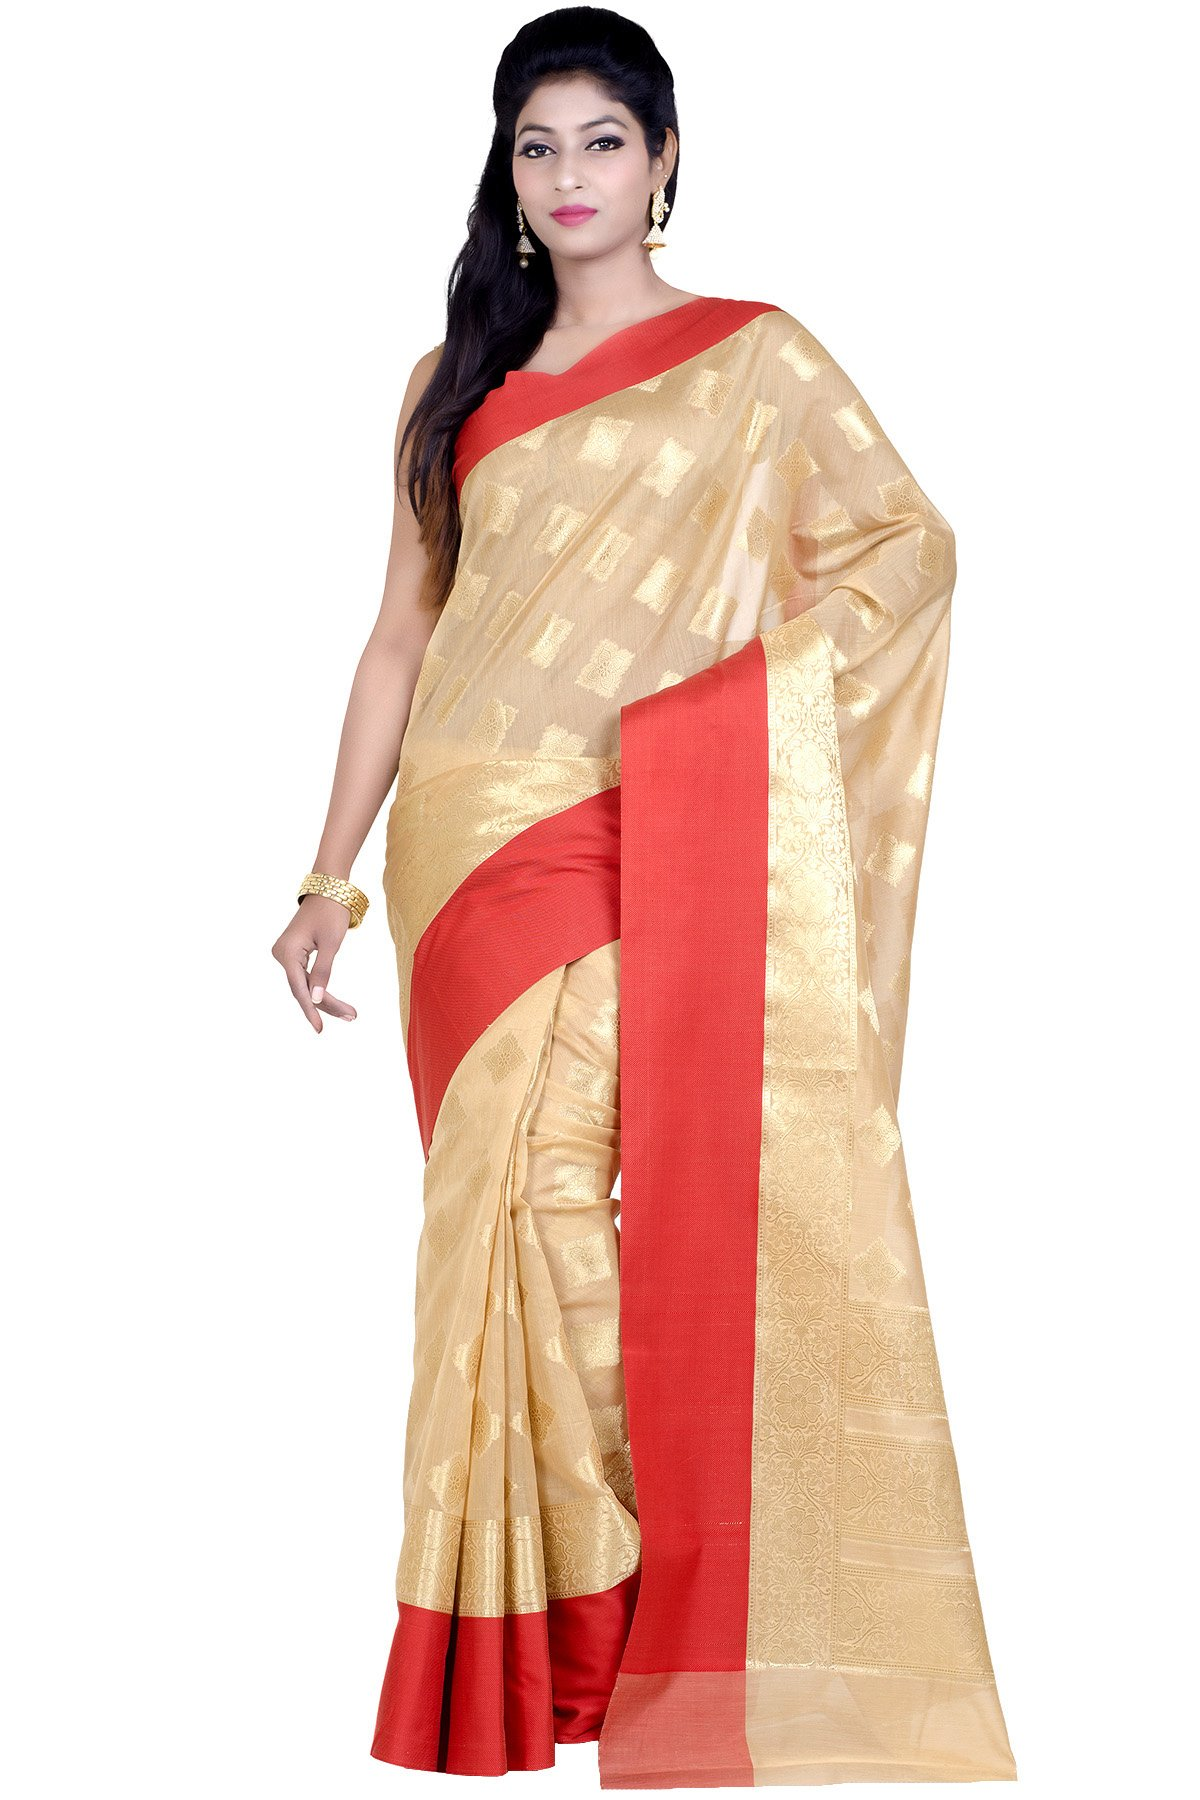 Chandrakala Women's Beige Mercerize Cotton Banarasi Saree with unstitched Blousepiece.